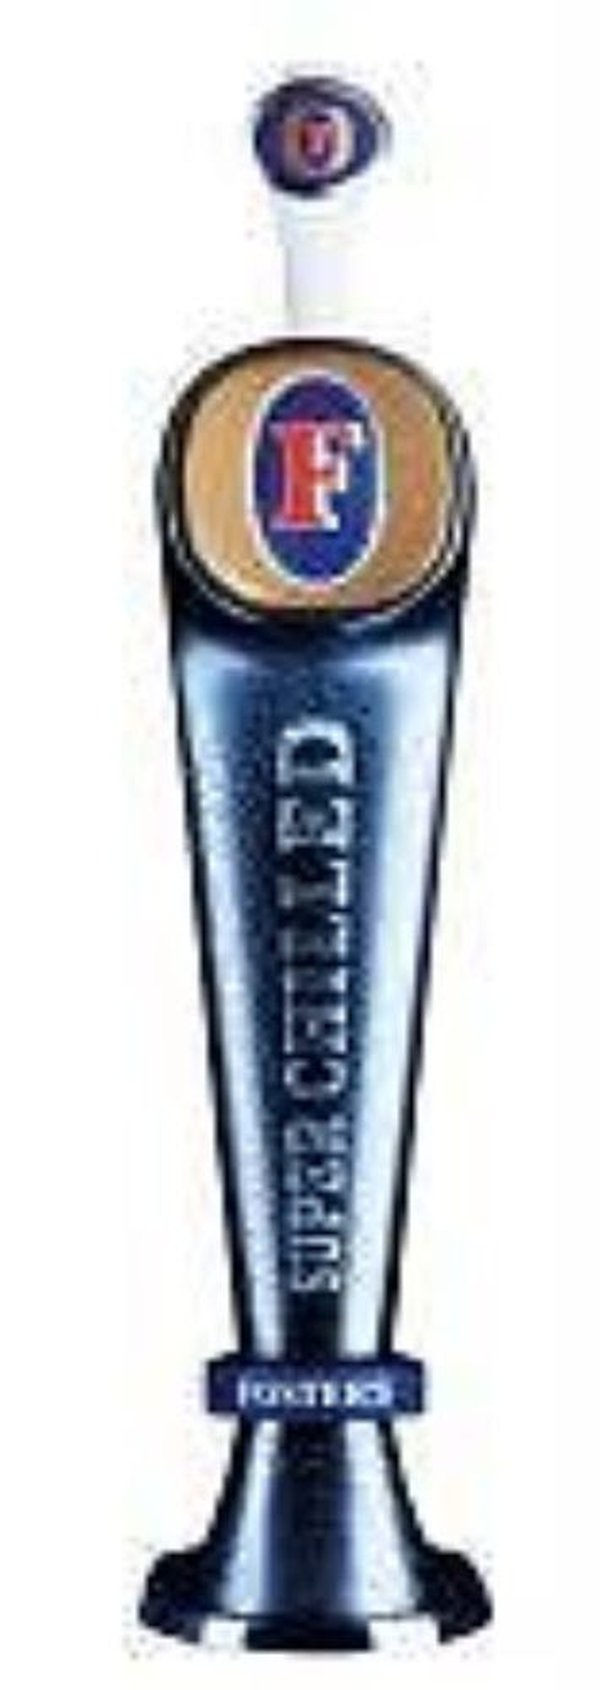 Fosters beer tap